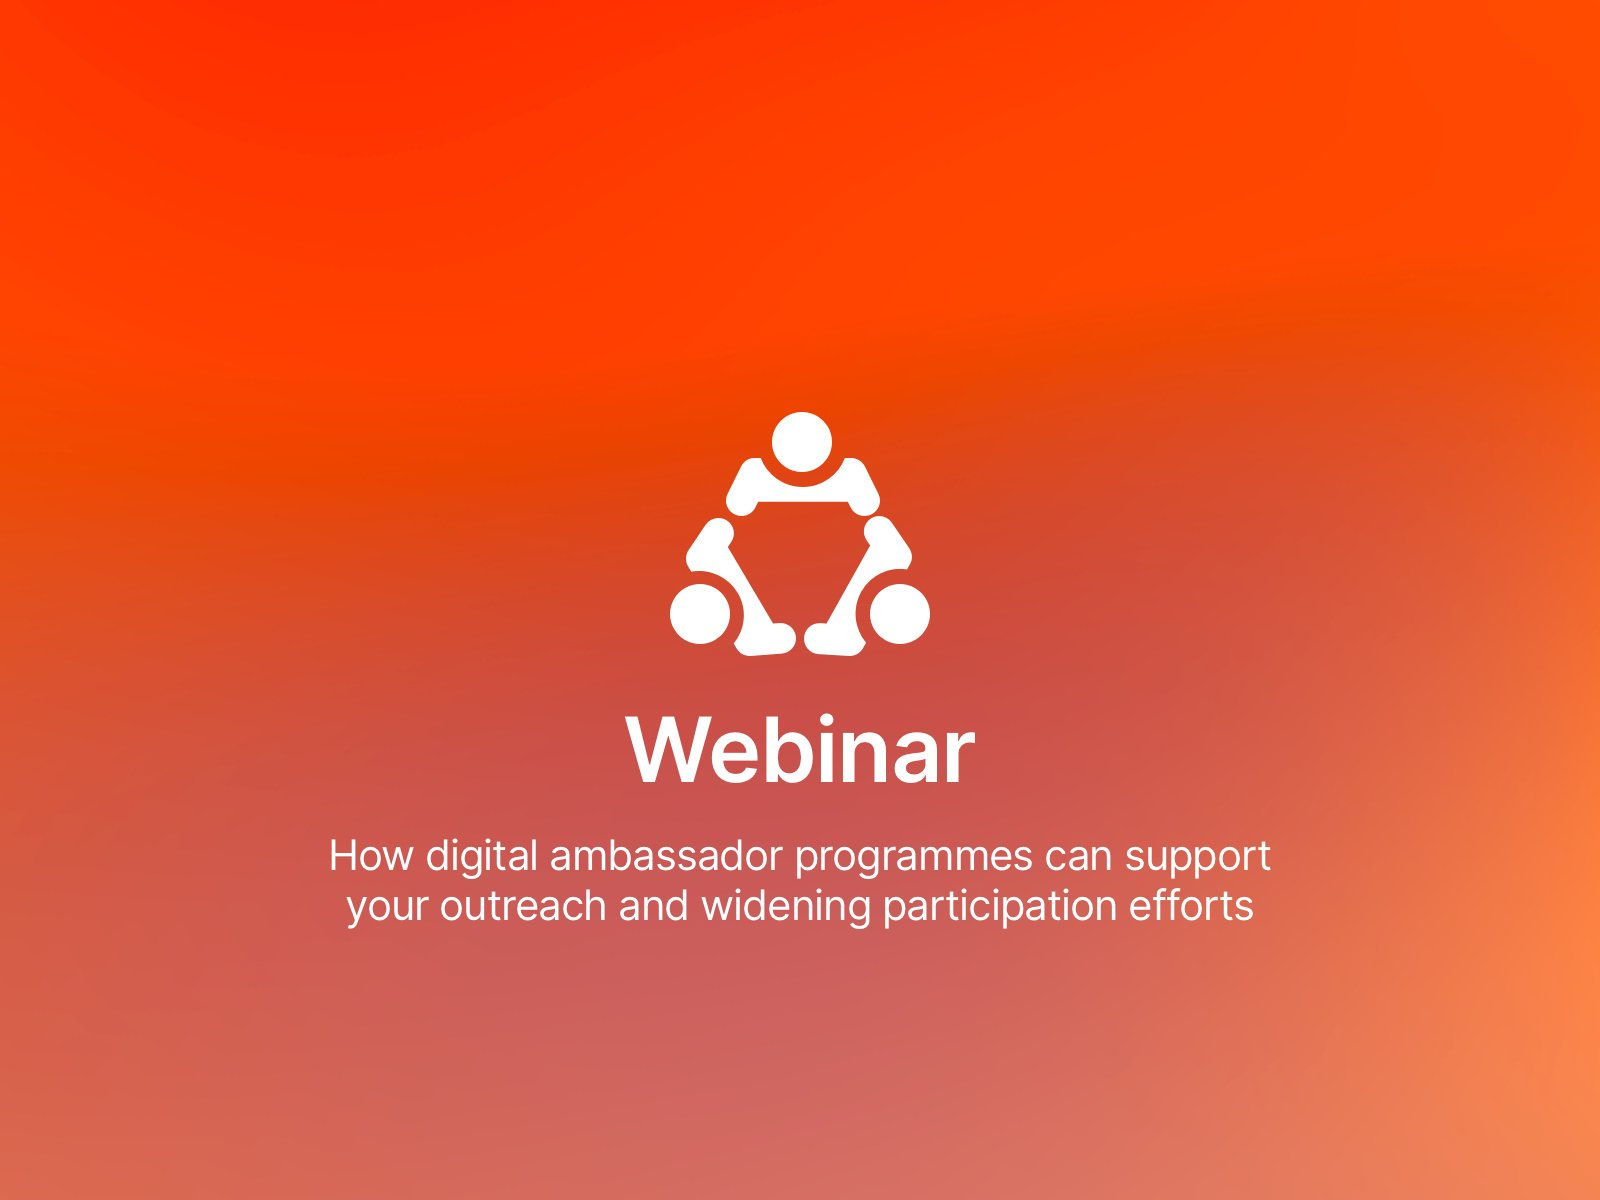 How digital ambassador programmes can support your outreach and widening participation efforts